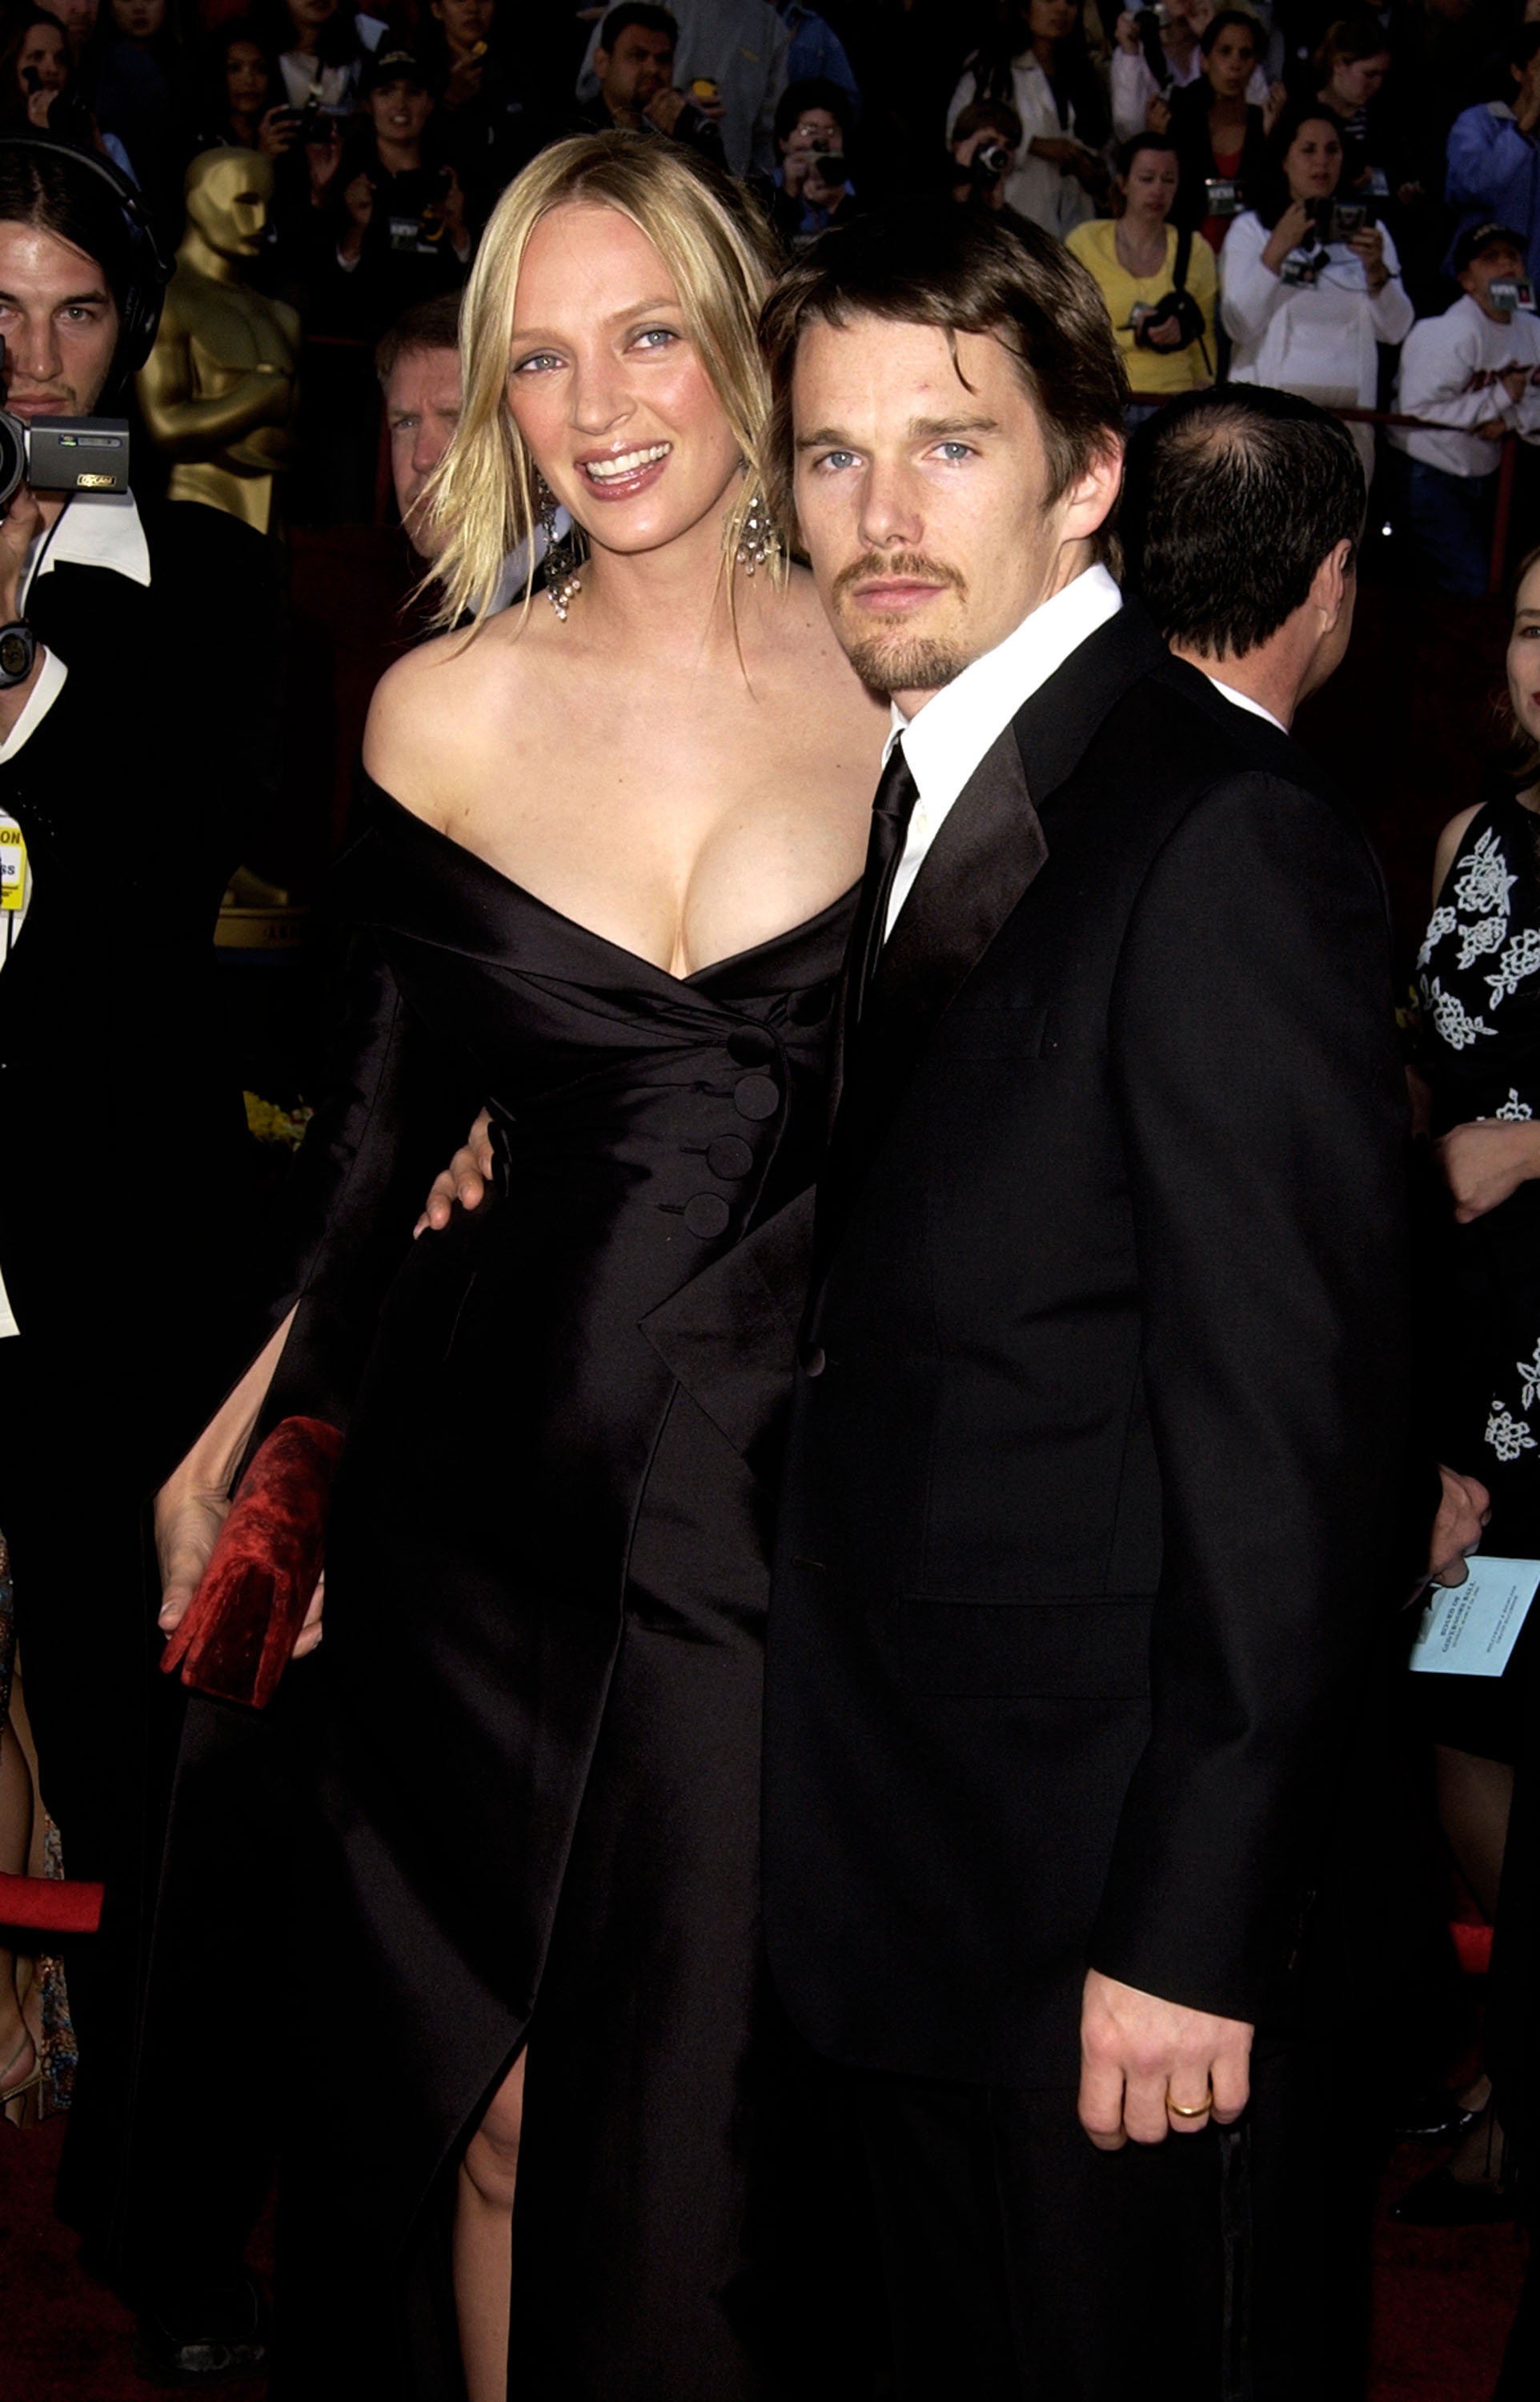 Uma Thurman & Ethan Hawke at the Kodak Theater in Hollywood for the 74th Annual Academy Awards in 2002.